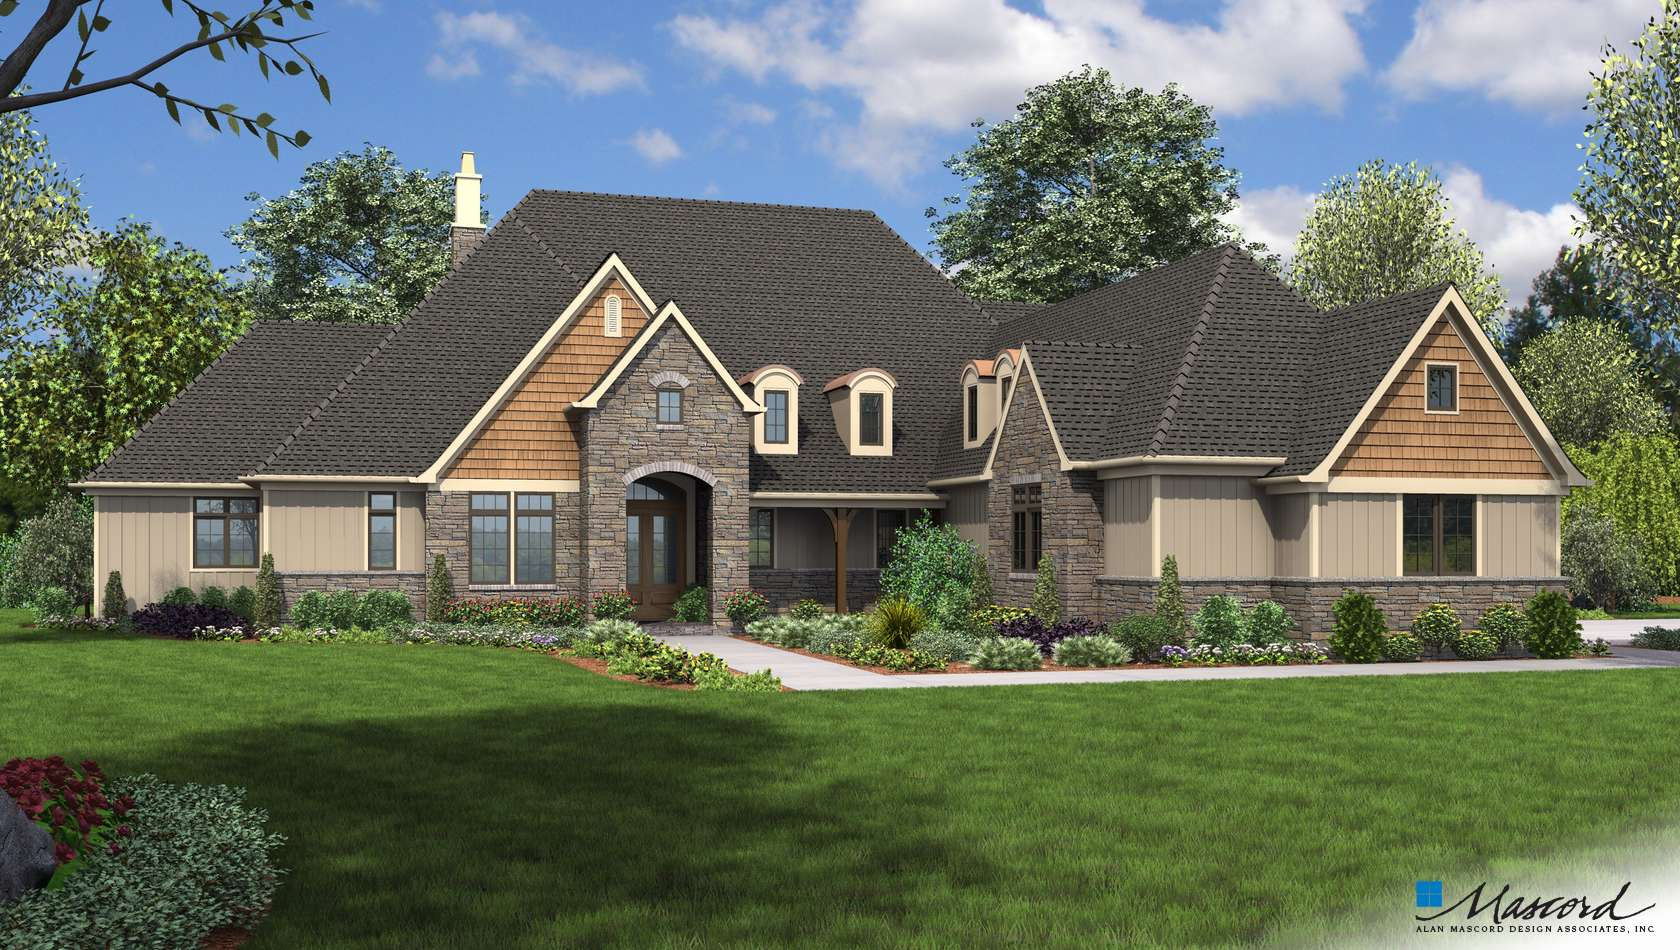 Main image for house plan 2459A: The Williamson